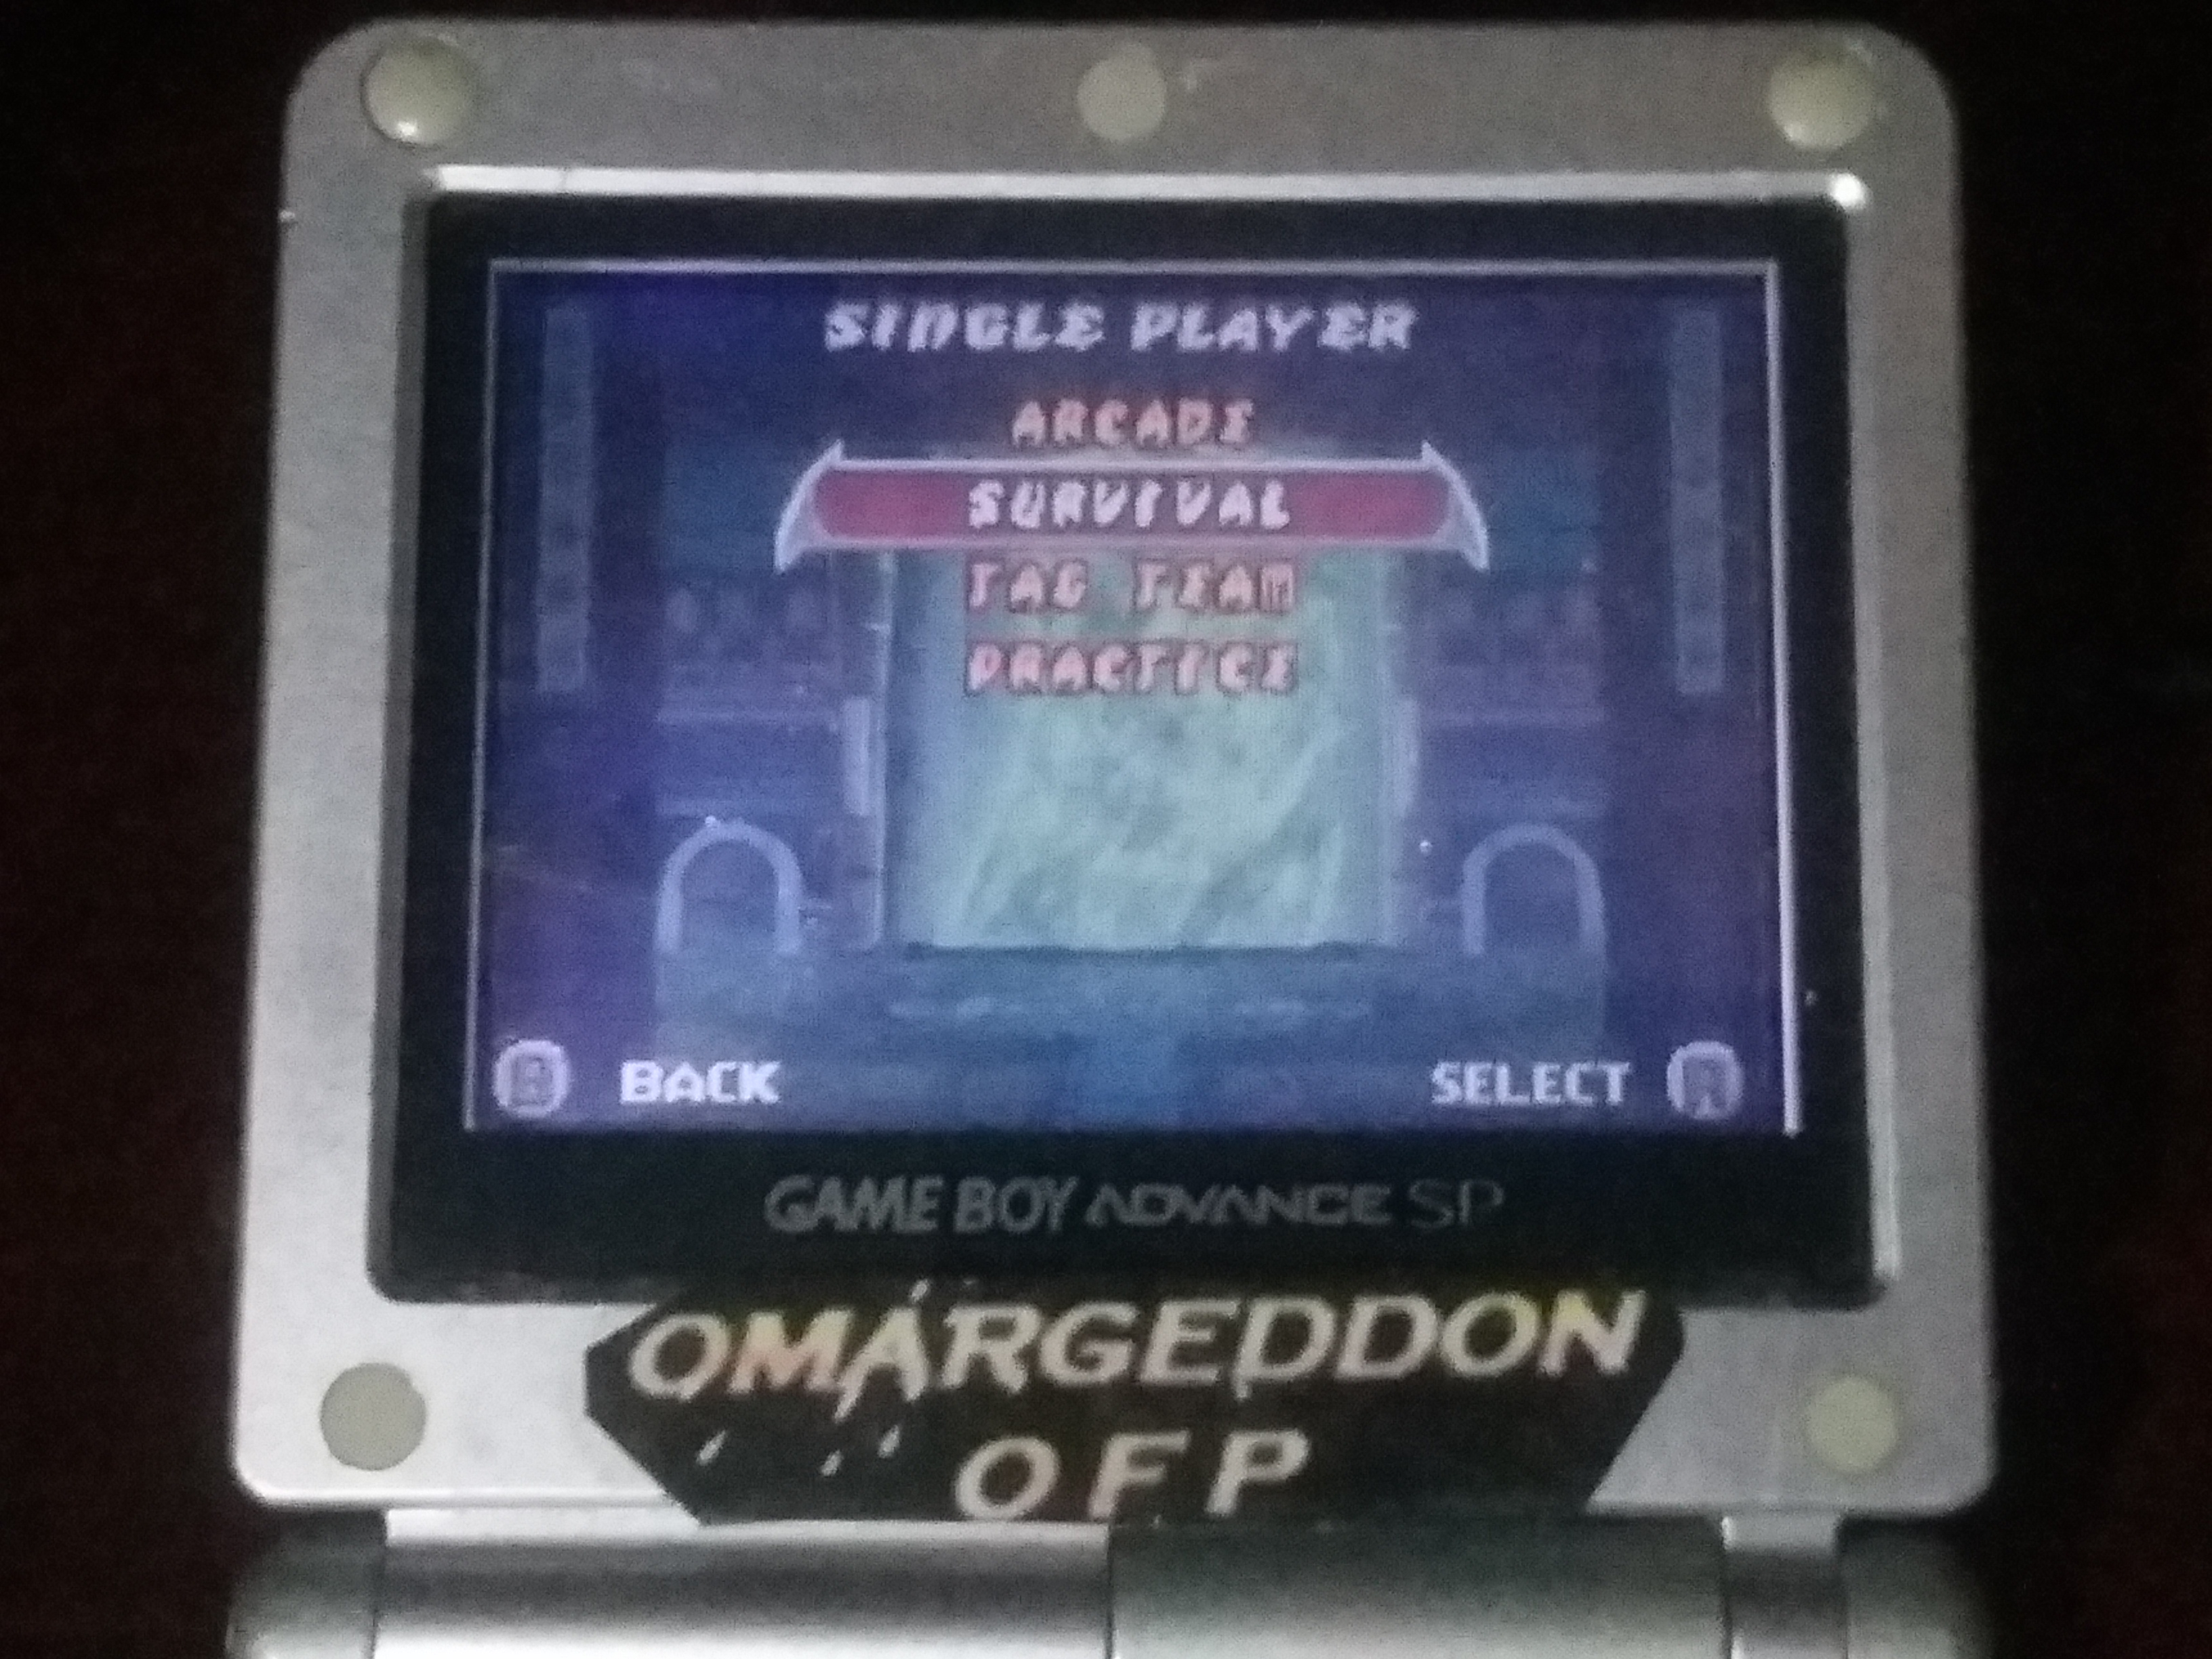 omargeddon: Mortal Kombat Tournament Edition: Survival (GBA) 7 points on 2018-04-25 20:58:39